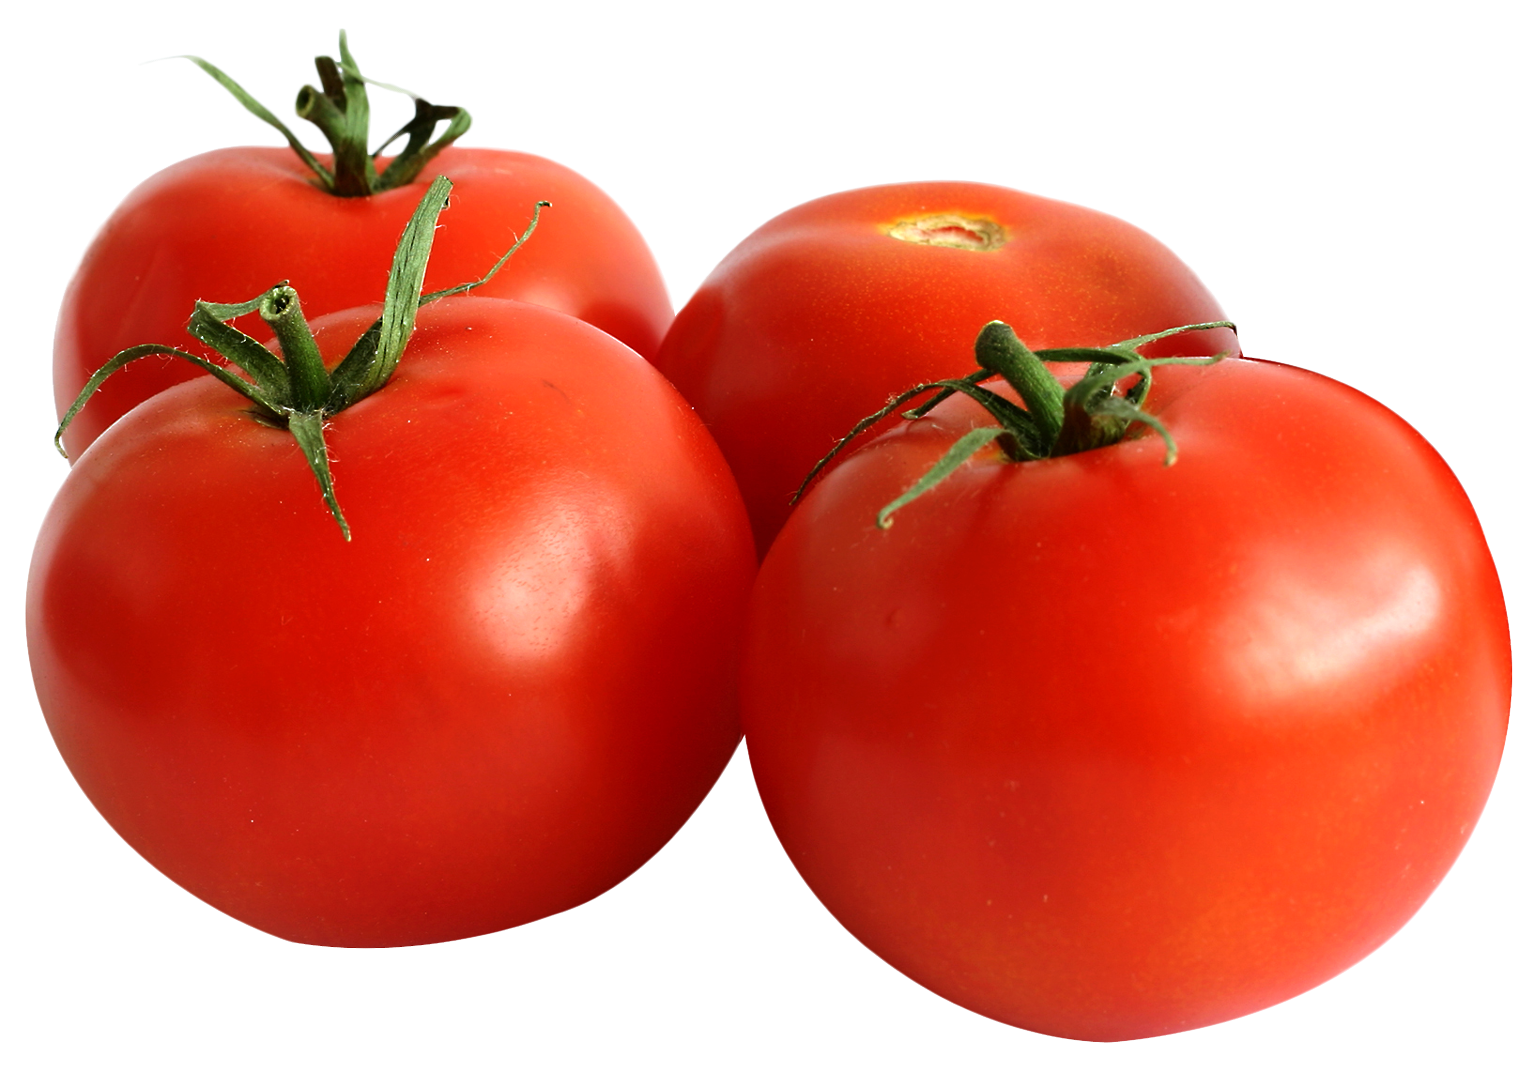 PNG Tomato - 57152